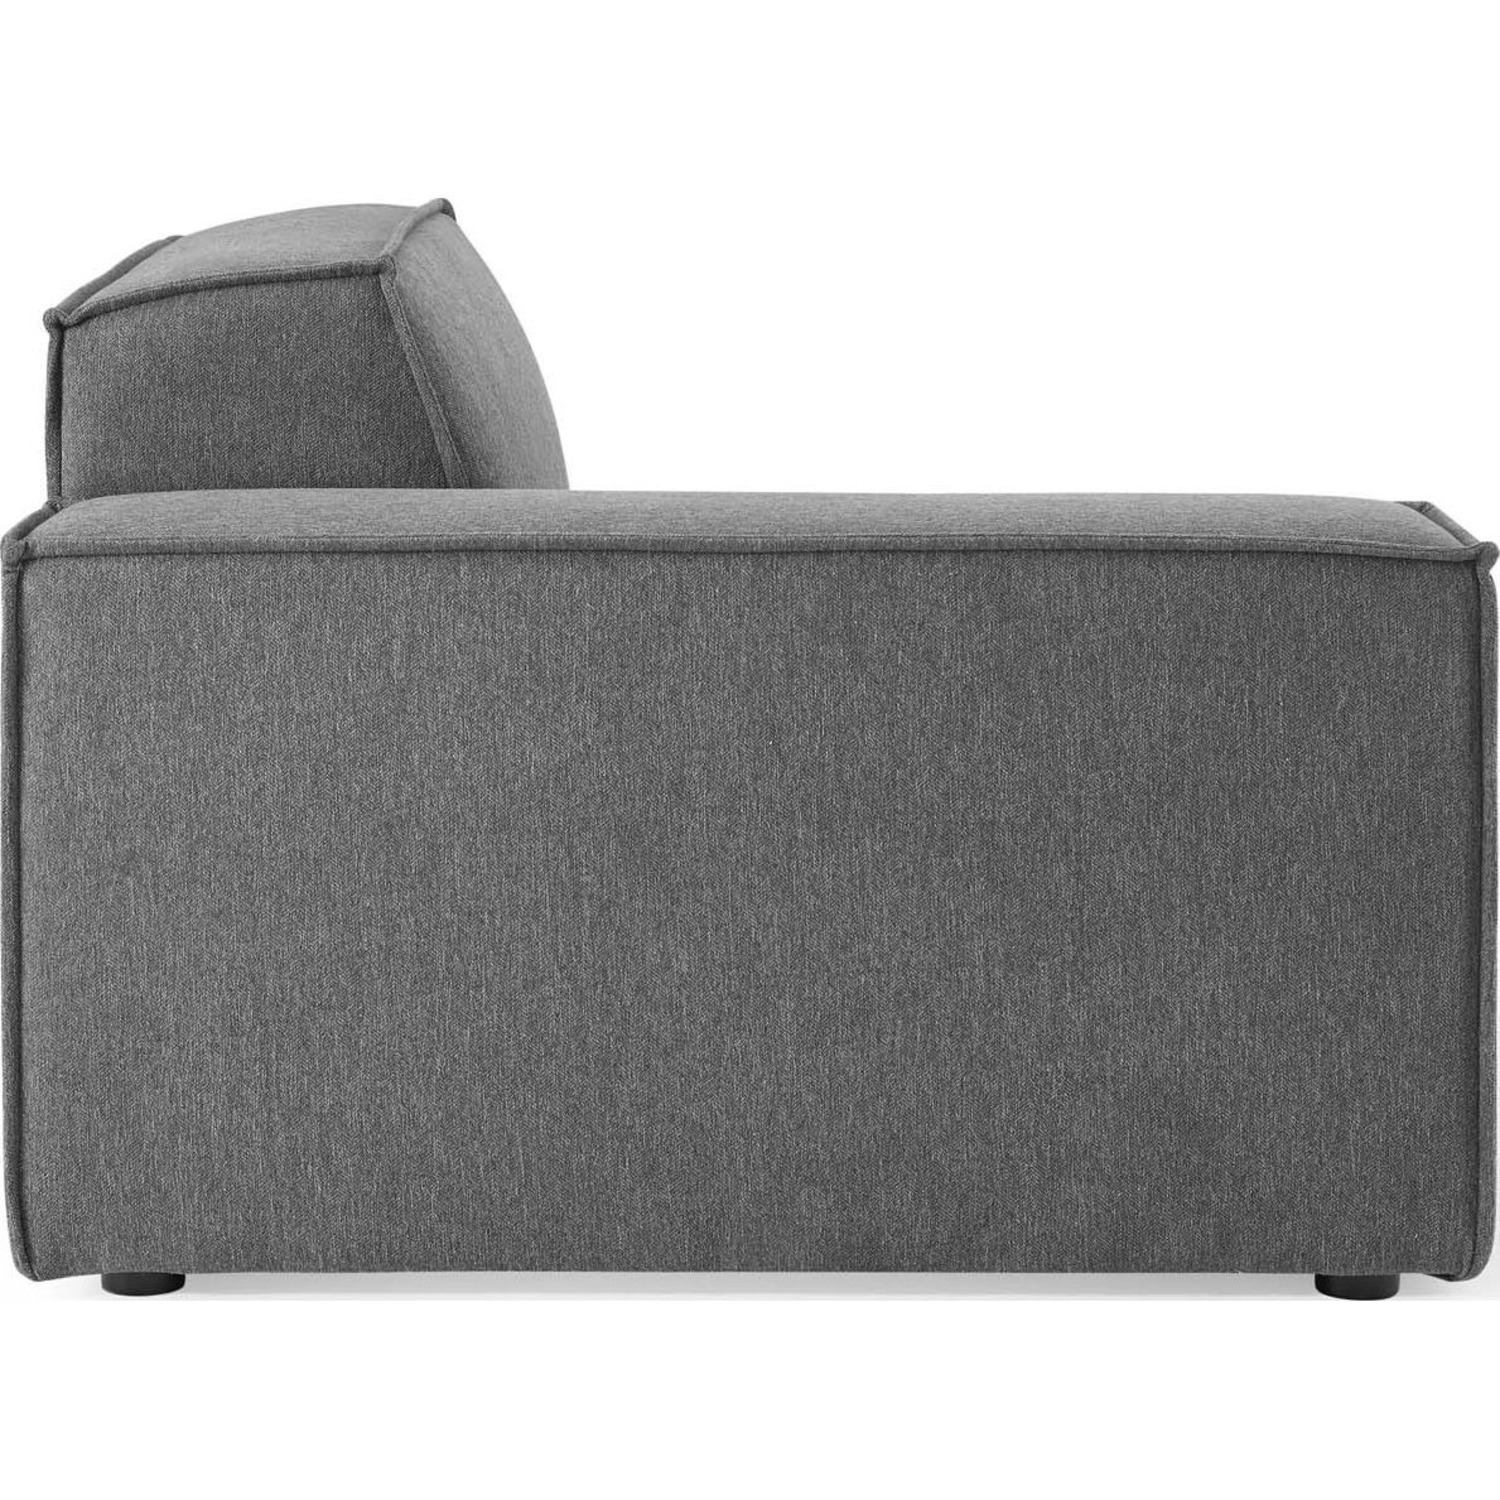 4-Piece Sectional Sofa In Charcoal Fabric - image-5